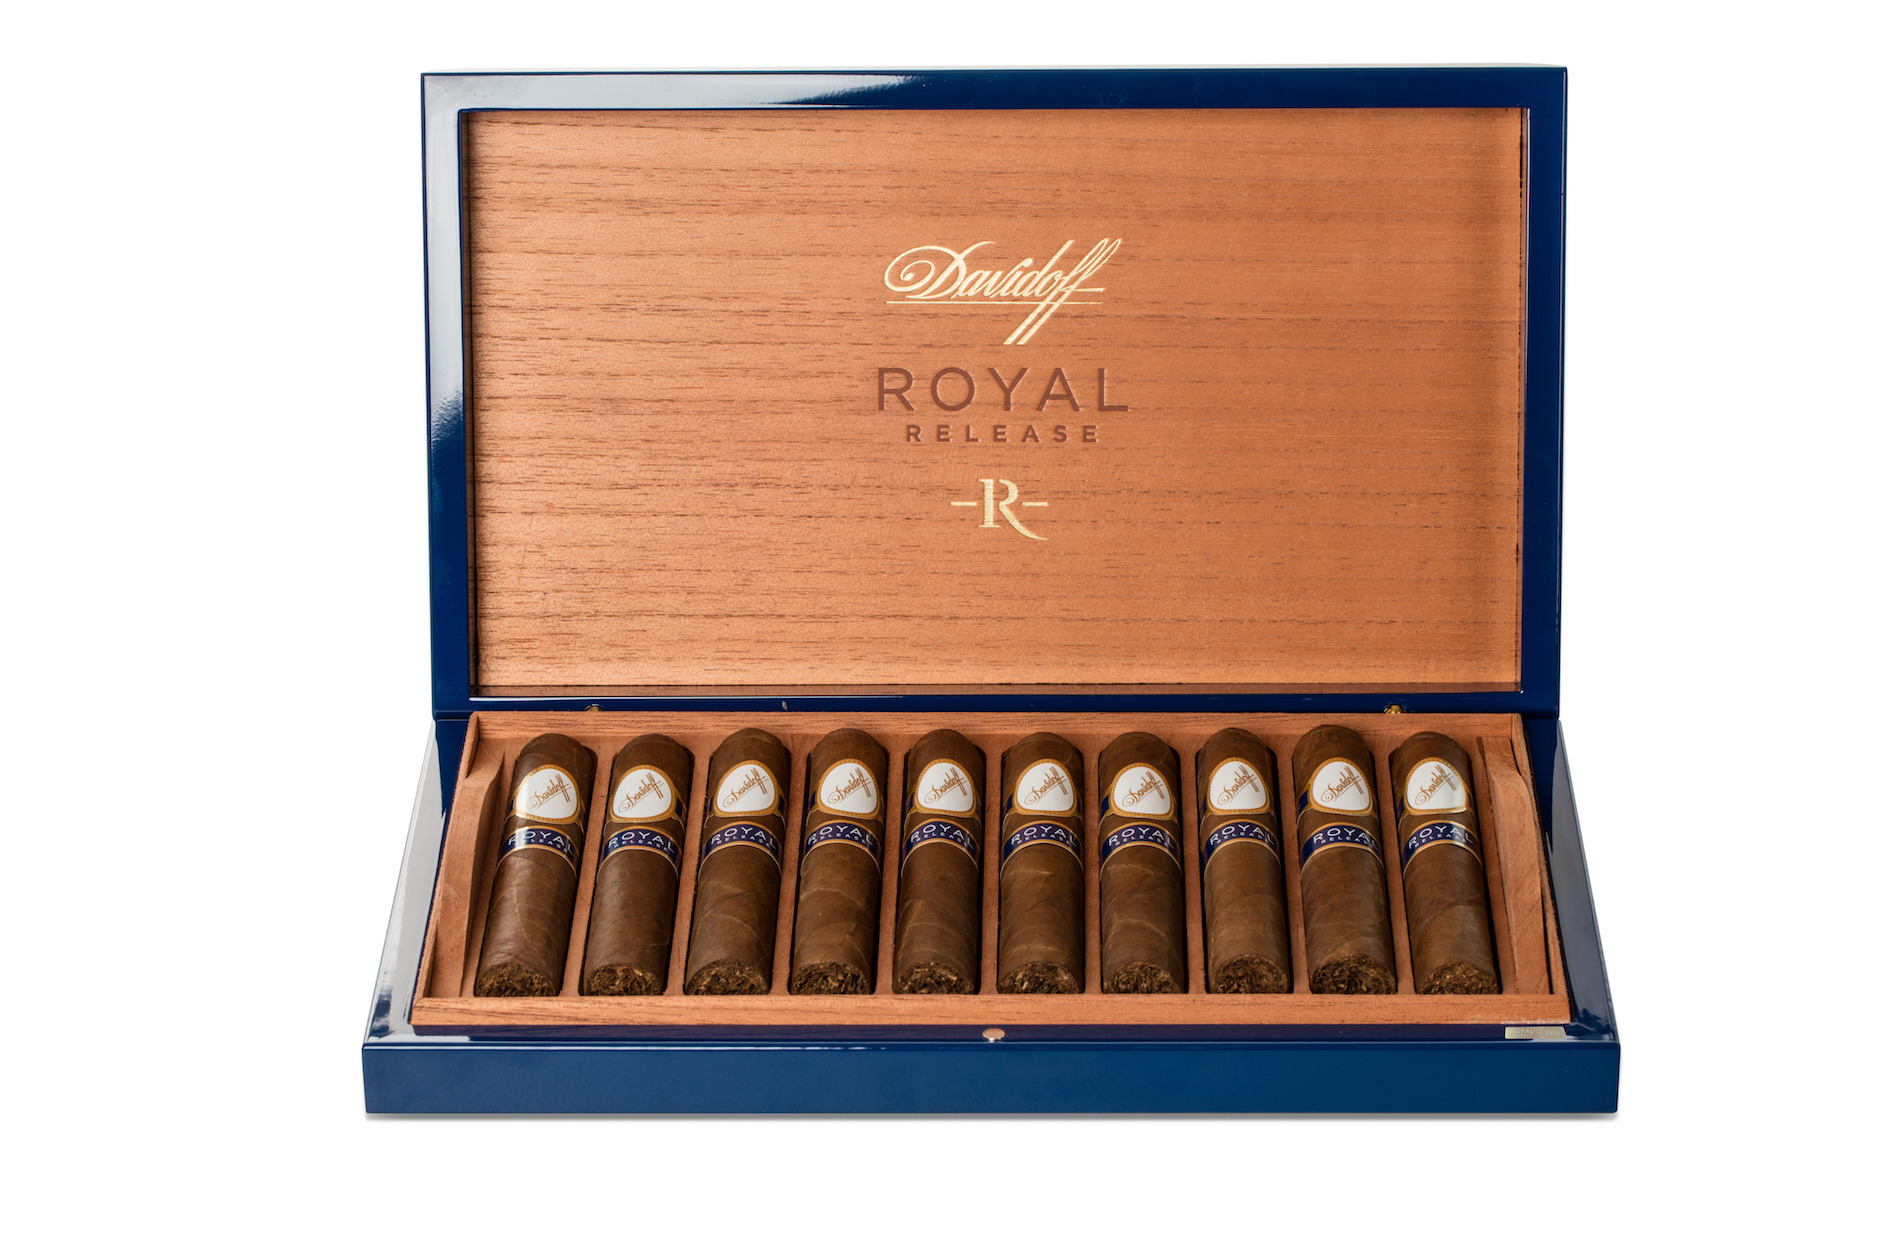 davidoff-royal-release-robusto-box